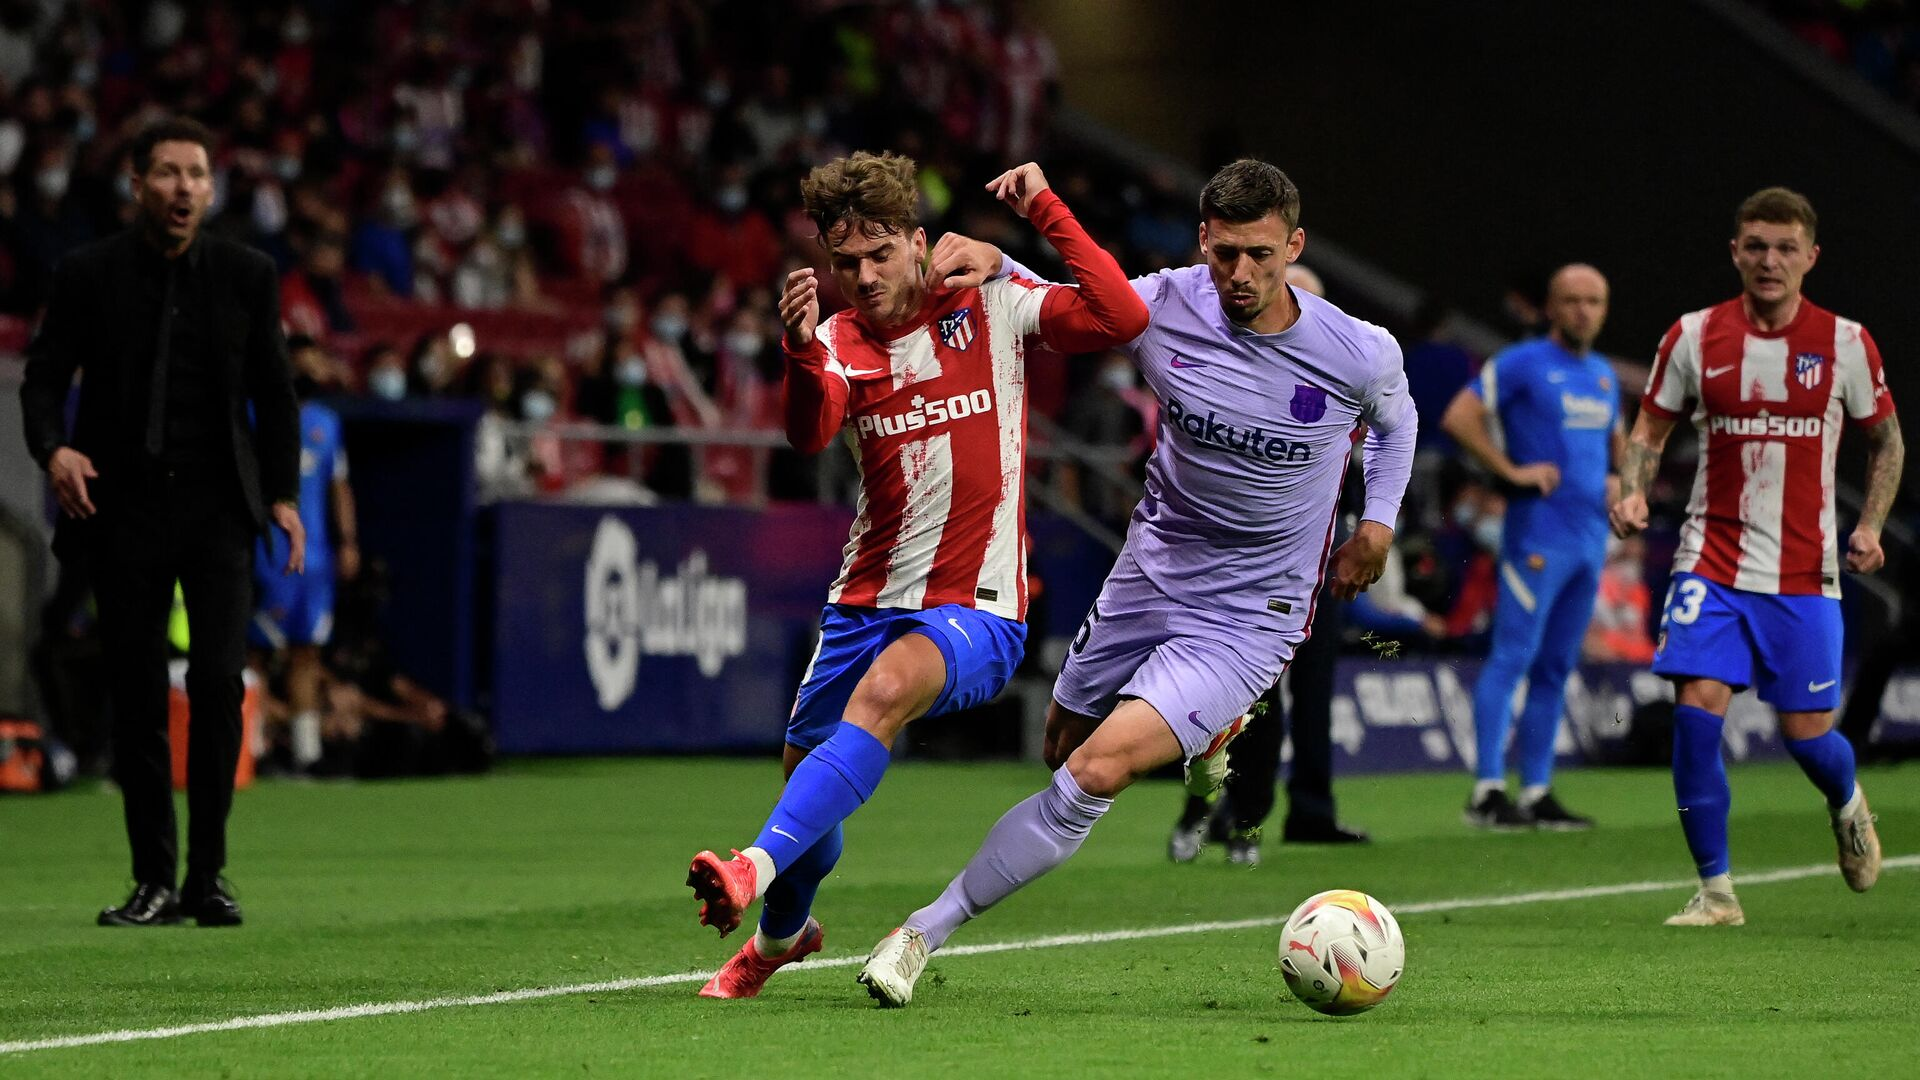 Atletico Madrid's French midfielder Antoine Griezmann (L) fights for the ball with Barcelona's French defender Clement Lenglet during the Spanish League football match between Club Atletico de Madrid and FC Barcelona at the Wanda Metropolitano stadium in Madrid on October 2, 2021. (Photo by JAVIER SORIANO / AFP) - РИА Новости, 1920, 03.10.2021